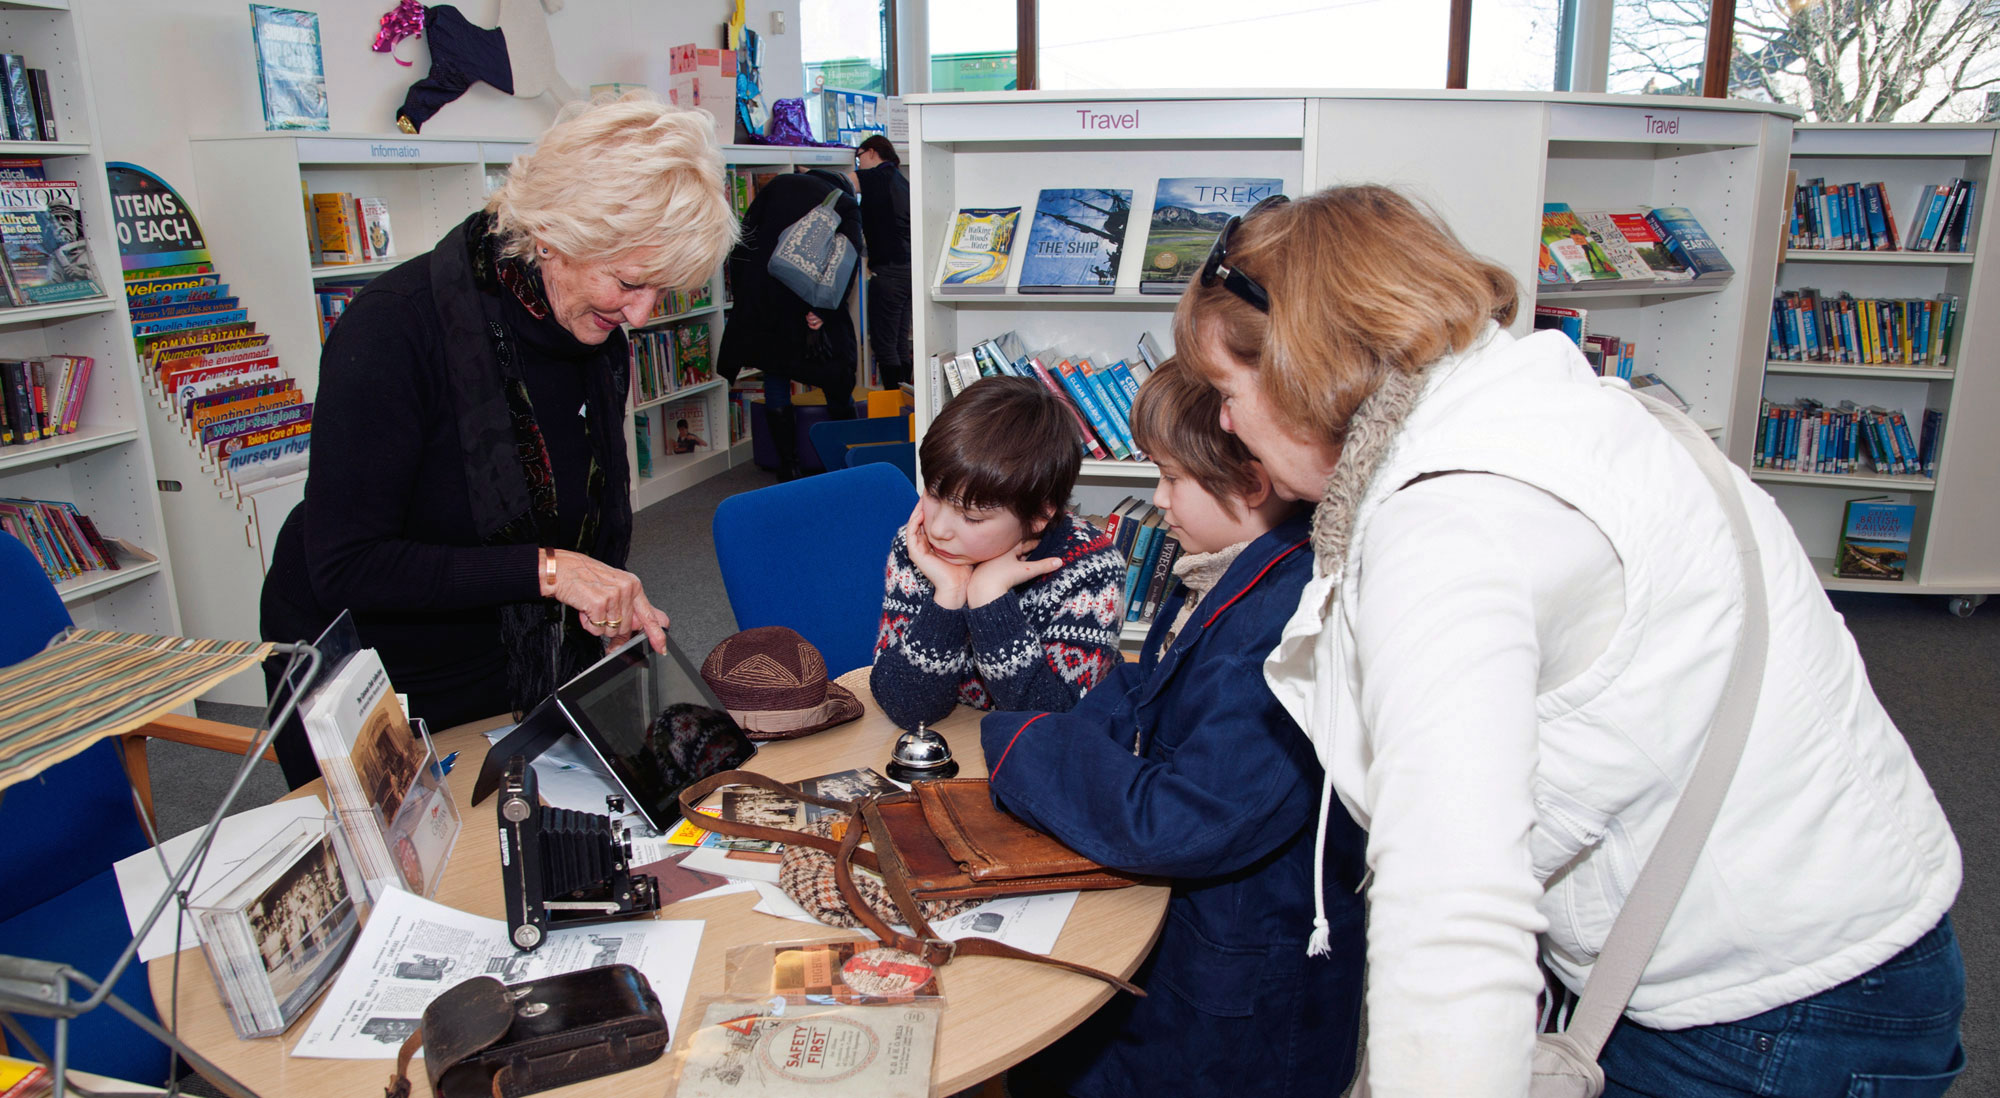 Lady showing museum objects to a family at Lymington Library